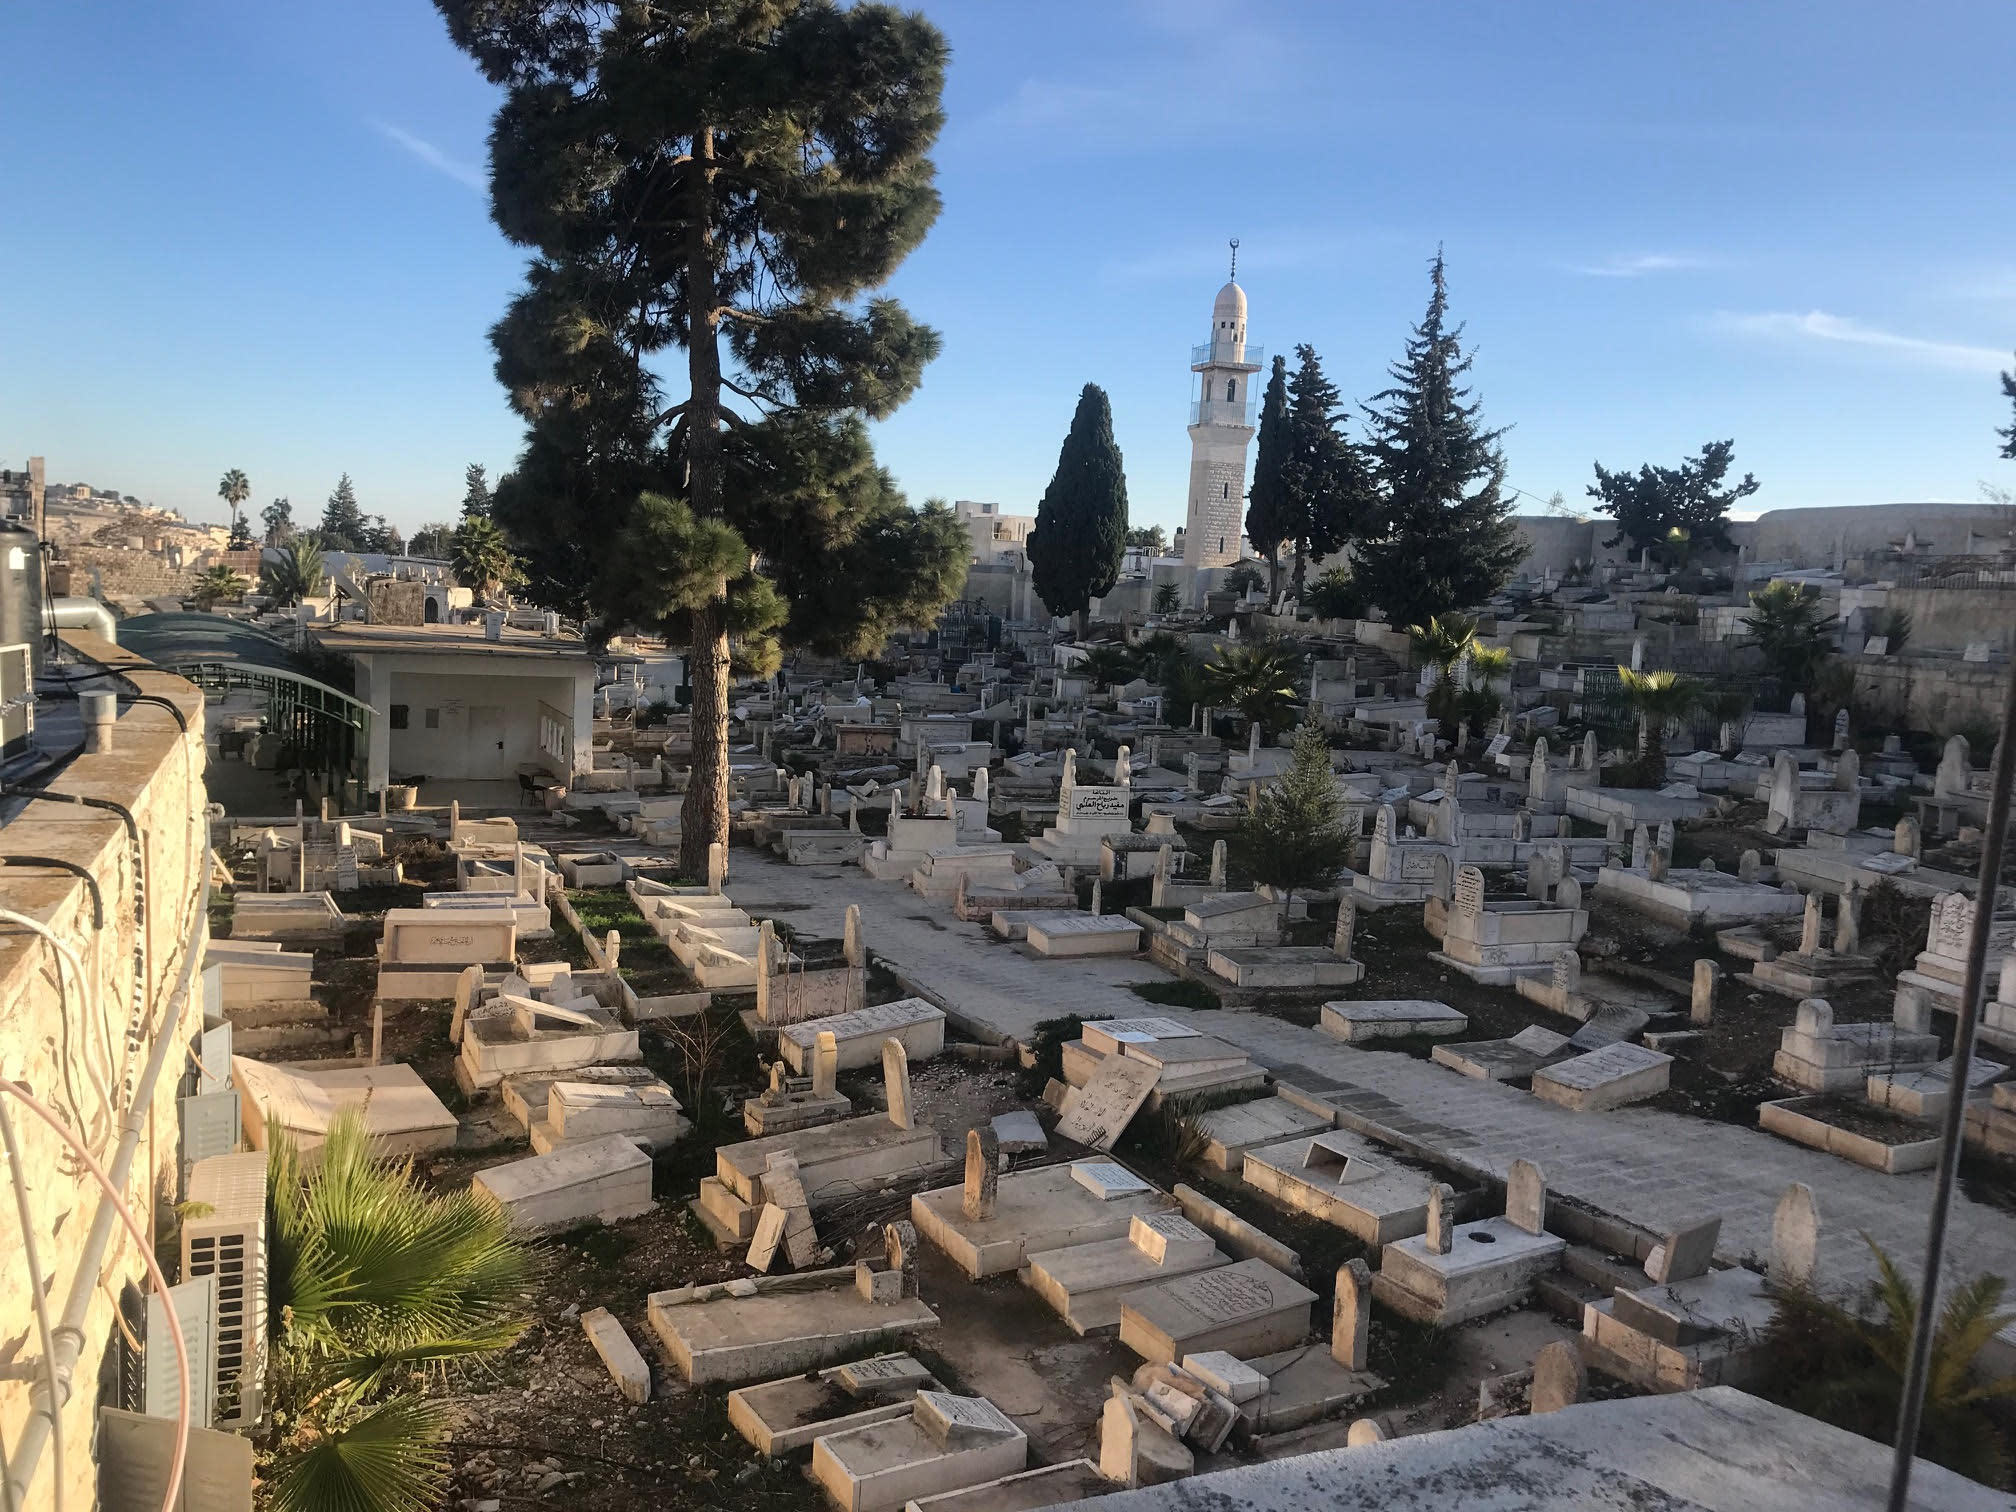 The East Jerusalem cemetery where Fakhri Nashashibi is buried (Seth J. Frantzman)